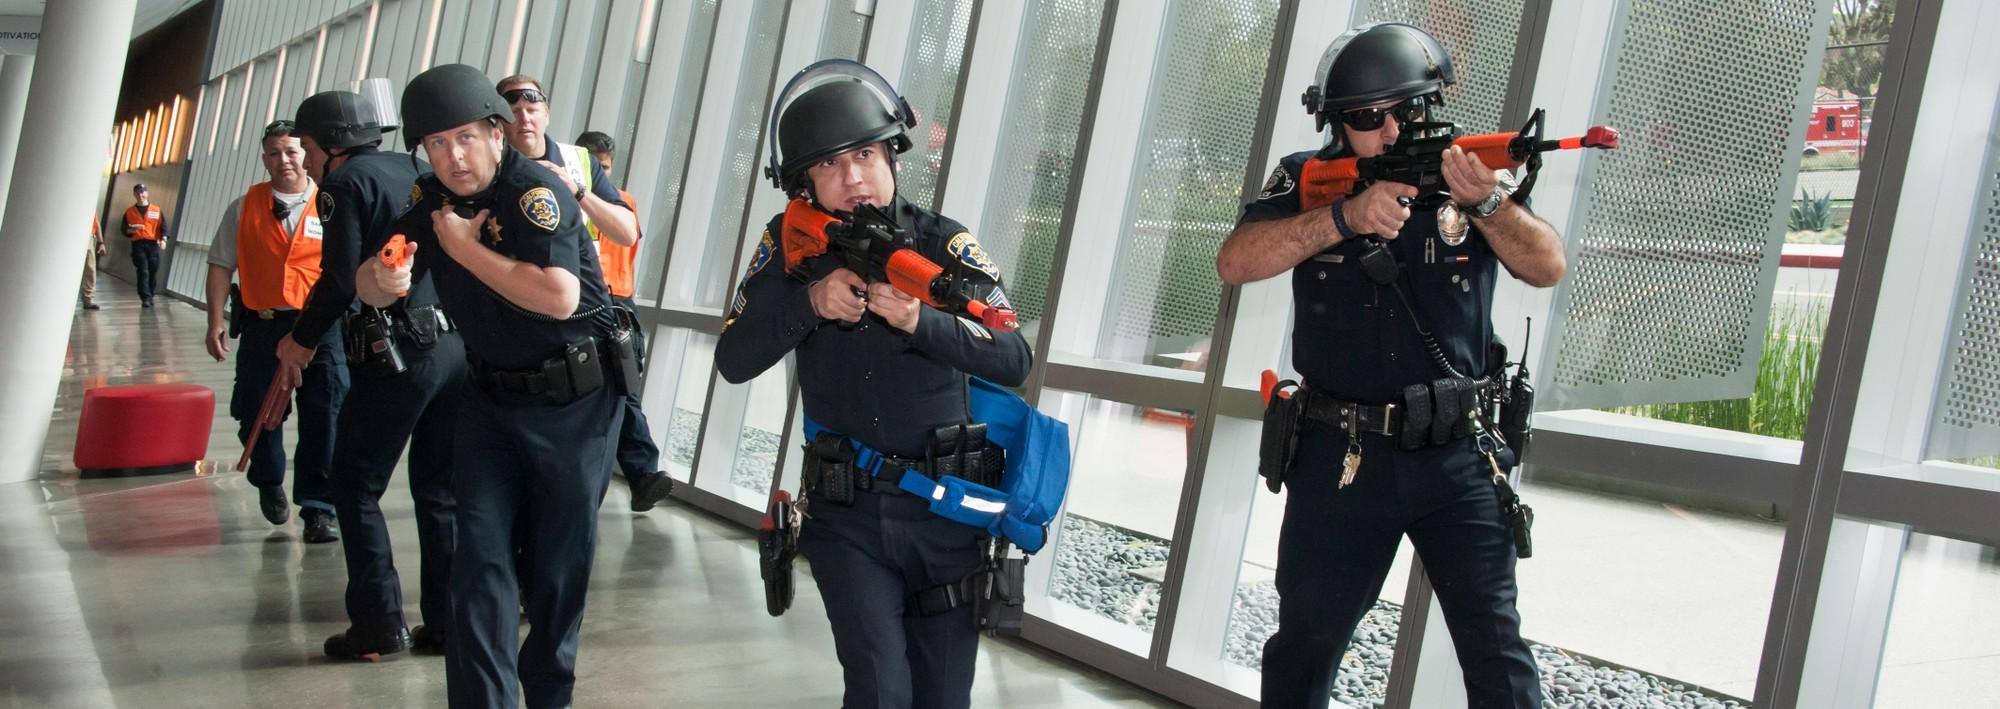 CSUN PD and CTVA collaborate on active shooter video.